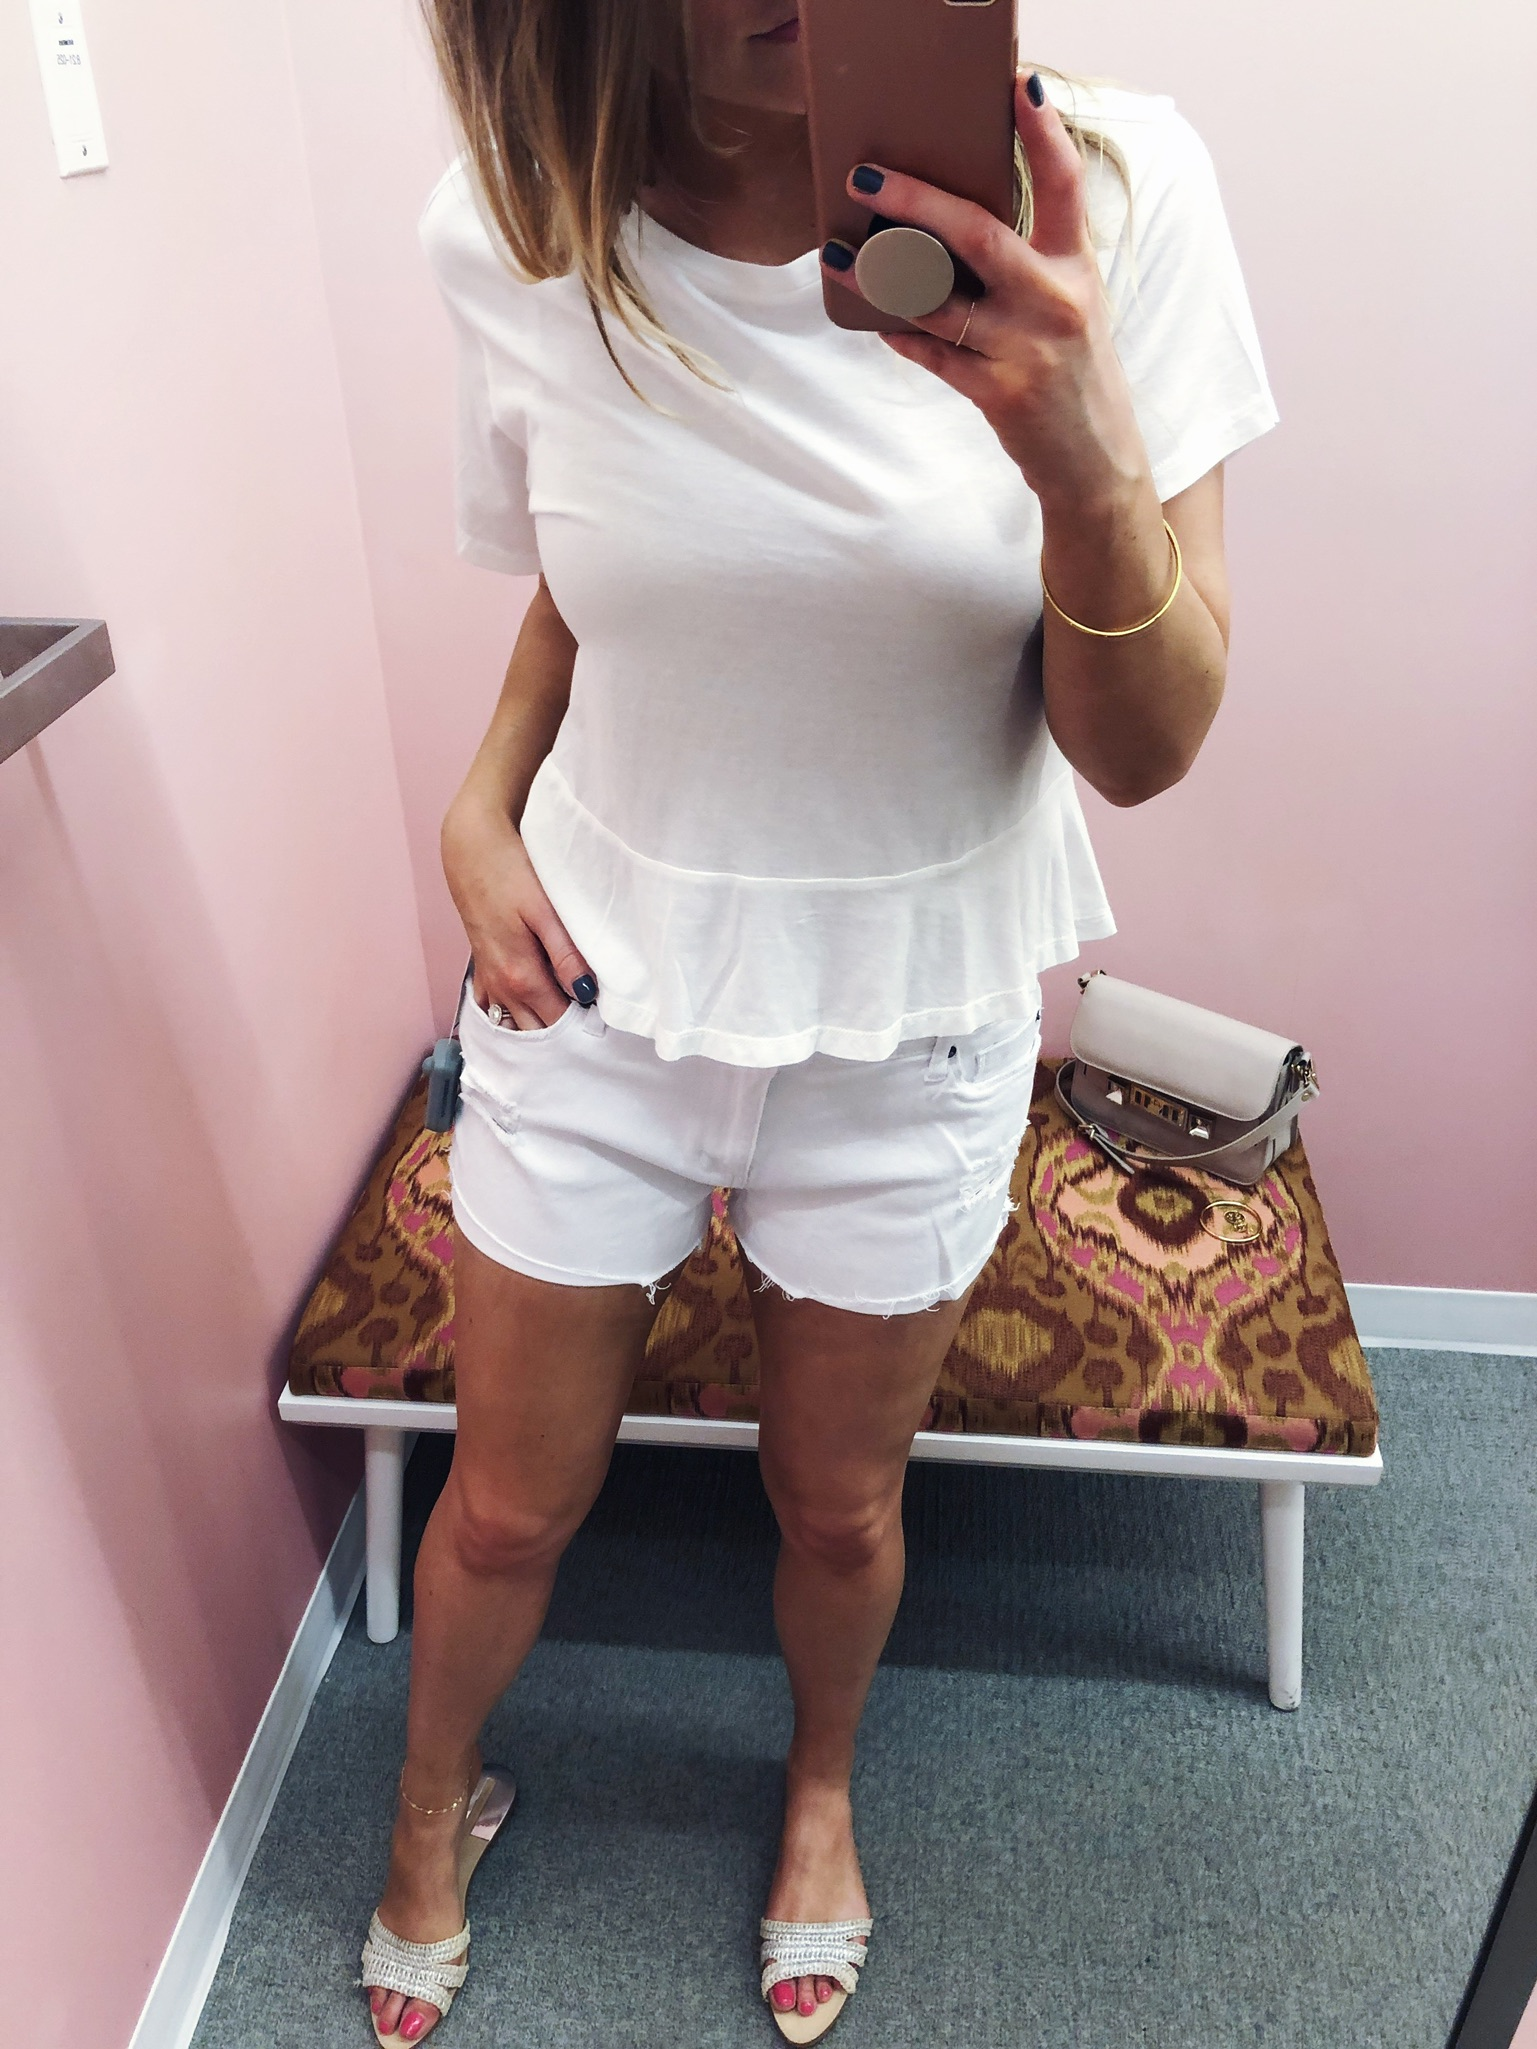 1 person, fitting room try on, Nordstrom half yearly sale, all white outfit